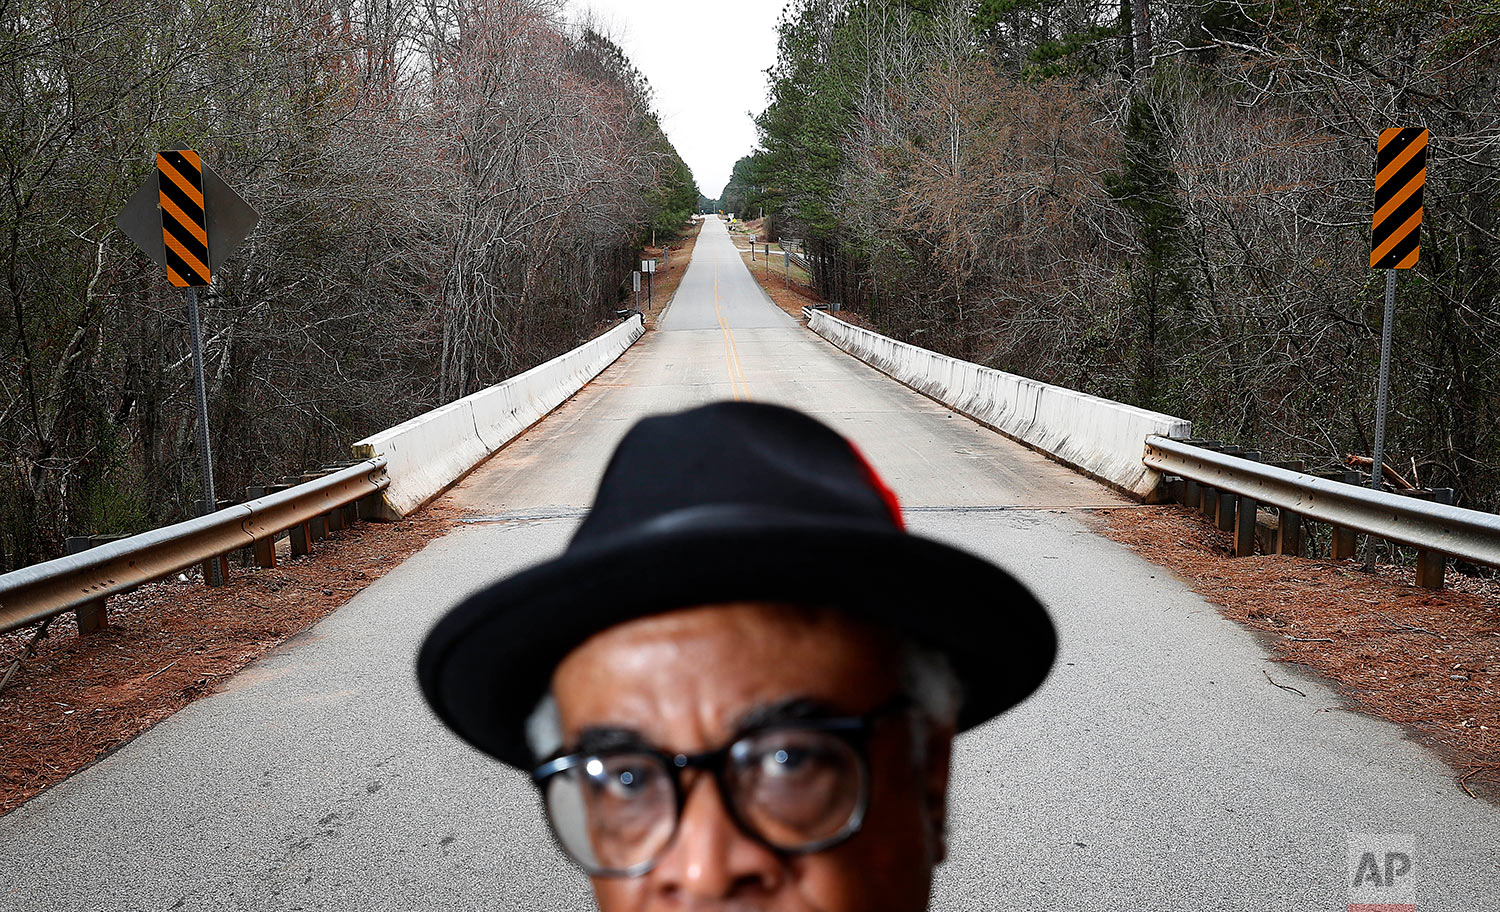 """In this Feb. 22, 2018 photo, Tyrone Brooks, a veteran civil rights activist, stands near the spot along the rural Moore's Ford Road where in 1946 two young black couples were stopped by a white mob and shot multiple times in Monroe, Ga. Even if no one is ultimately prosecuted for the deaths of Roger and Dorothy Malcom and George and Mae Murray Dorsey, it's important to know what happened and who was involved, said Brooks. Nonetheless, he said the closure of the investigations won't stop him. """"Our resolve is as strong as it's ever been,"""" Brooks said. (AP Photo/David Goldman)"""